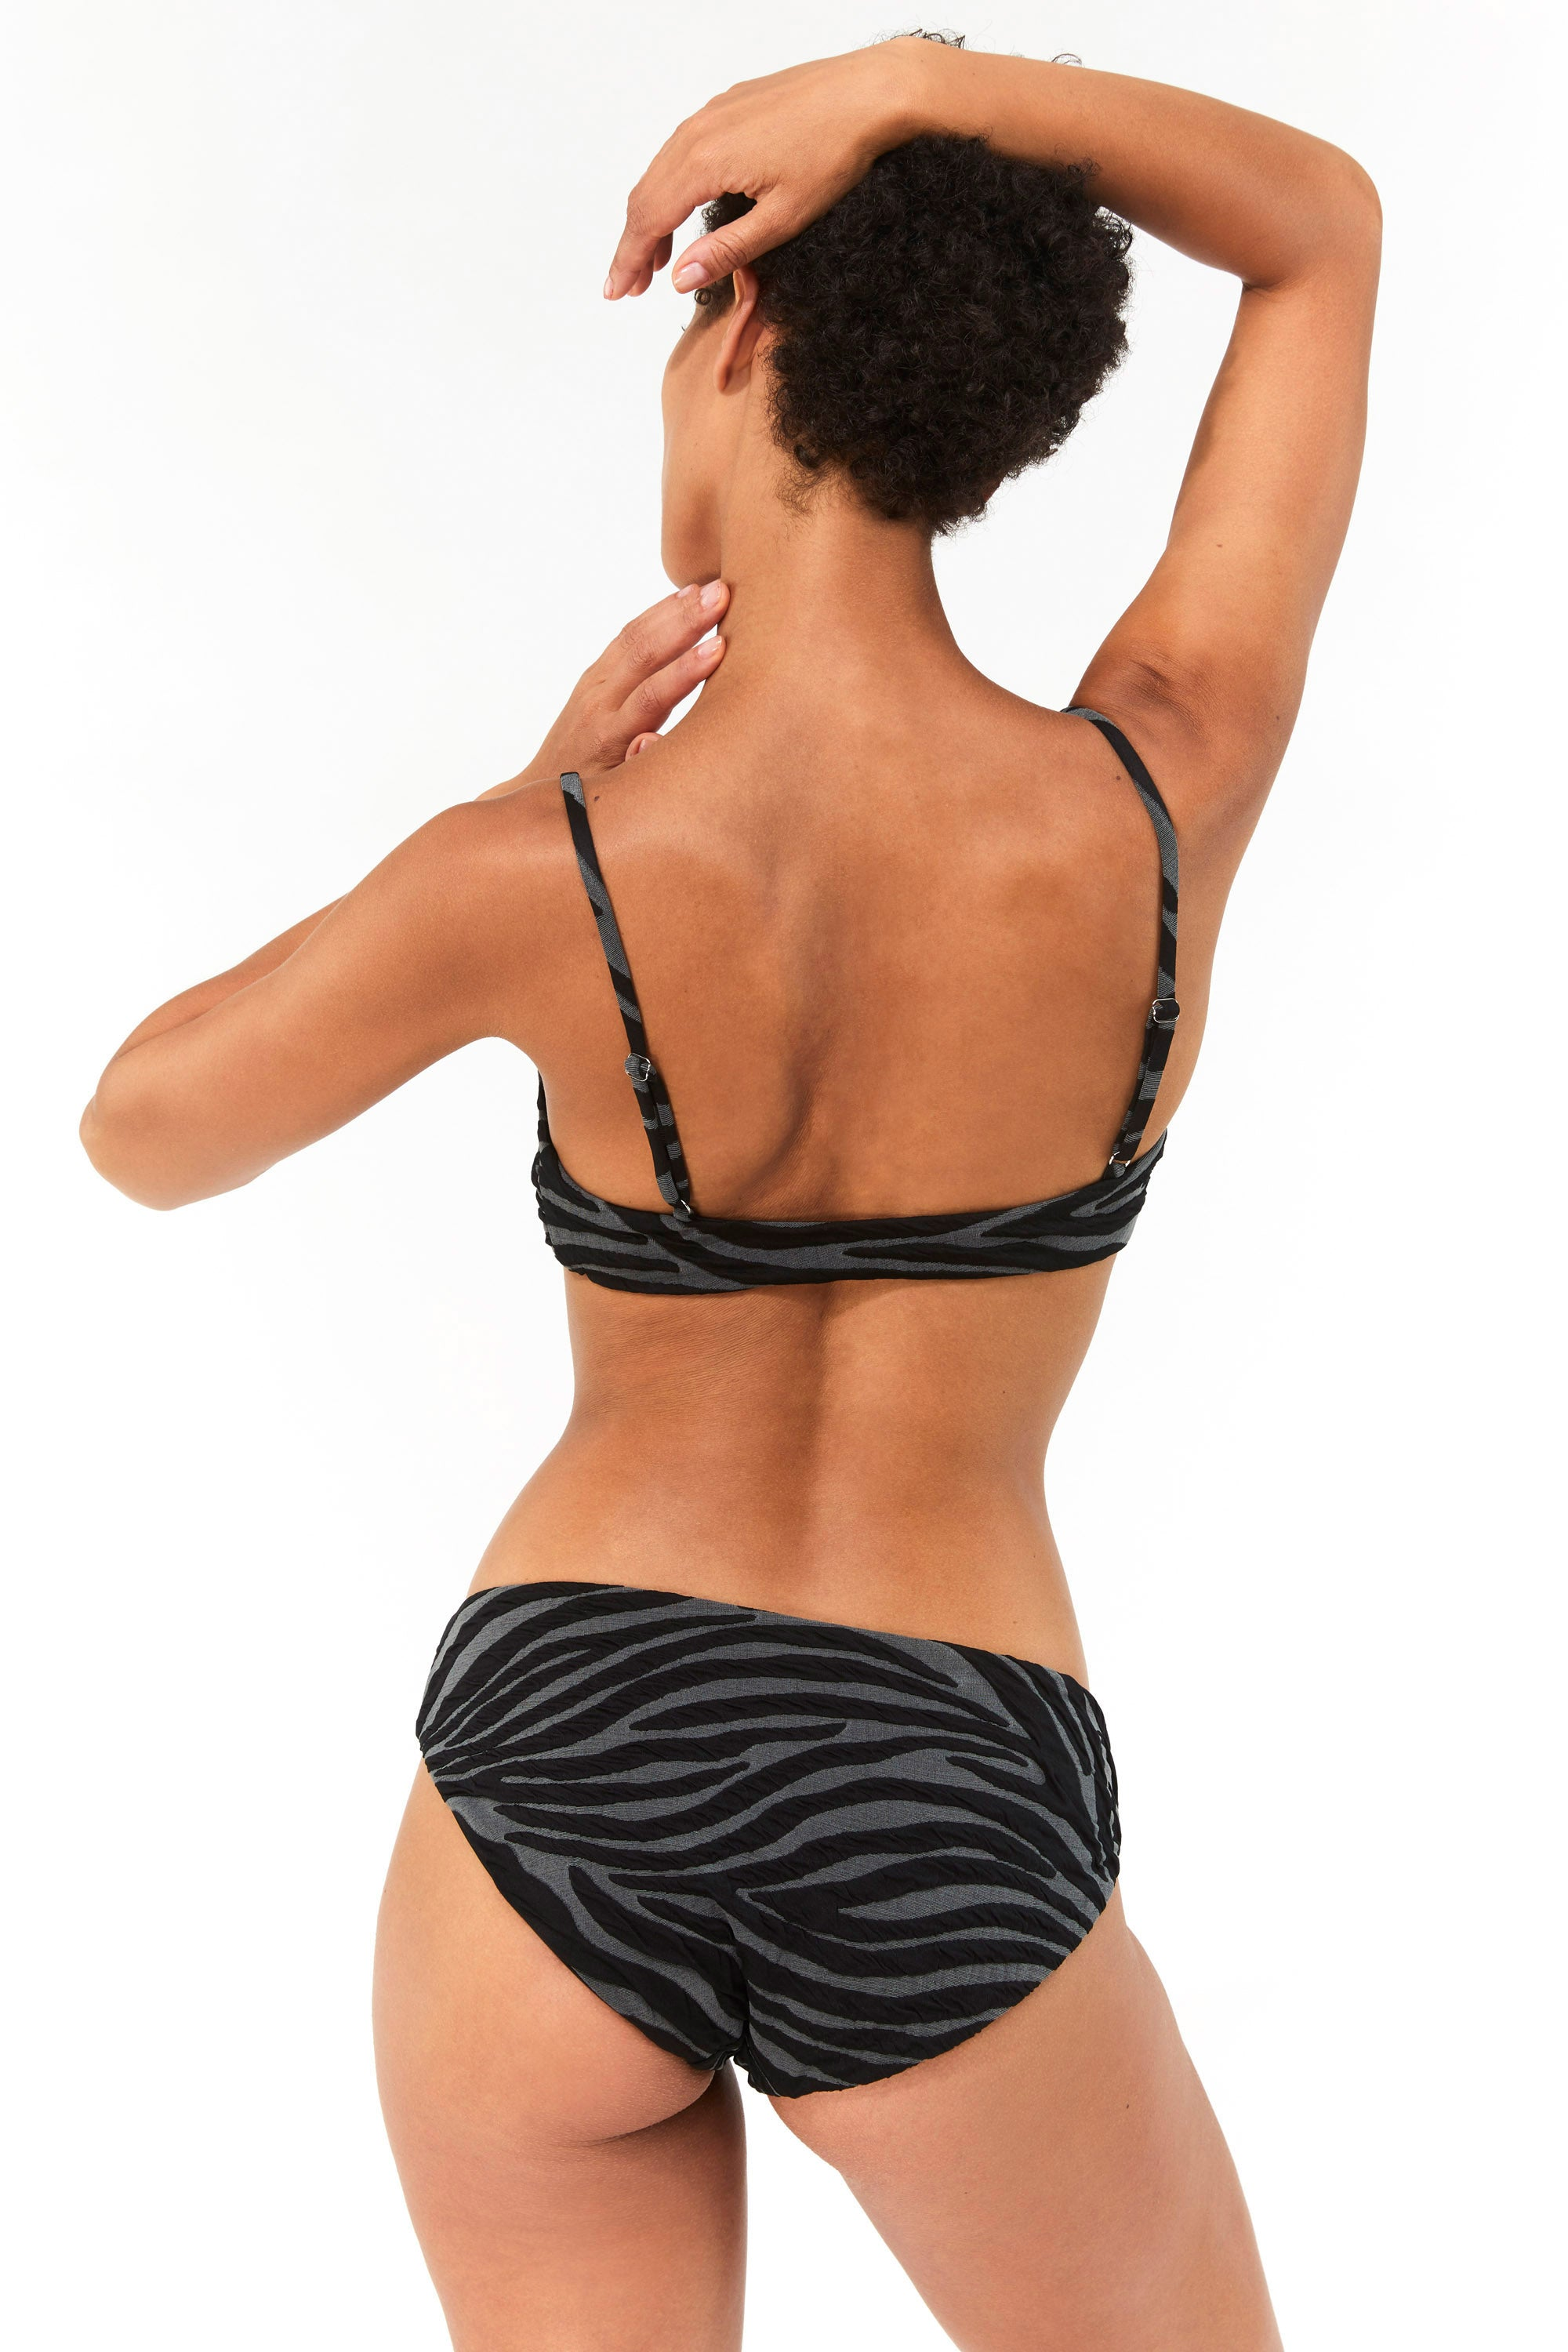 Mara Hoffman Black Gray Carla Bikini Top in Repreve (back)